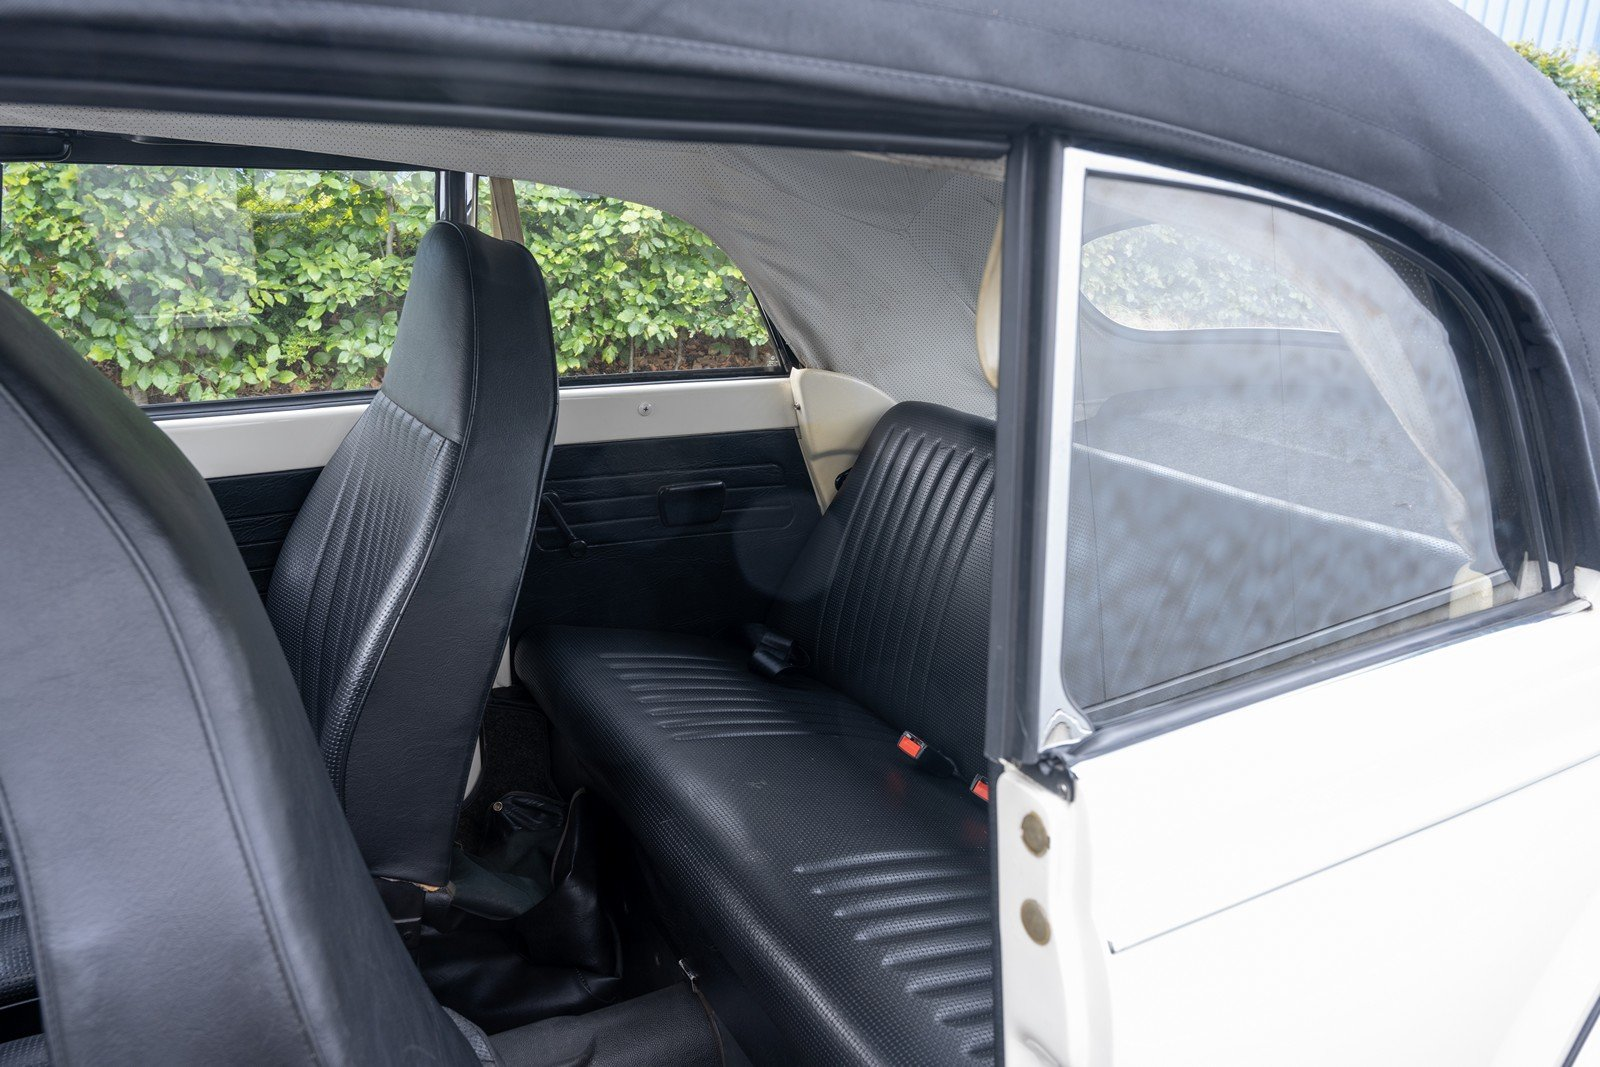 1973 Volkswagen Beetle Type 1303 Cabriolet For Sale (picture 20 of 39)